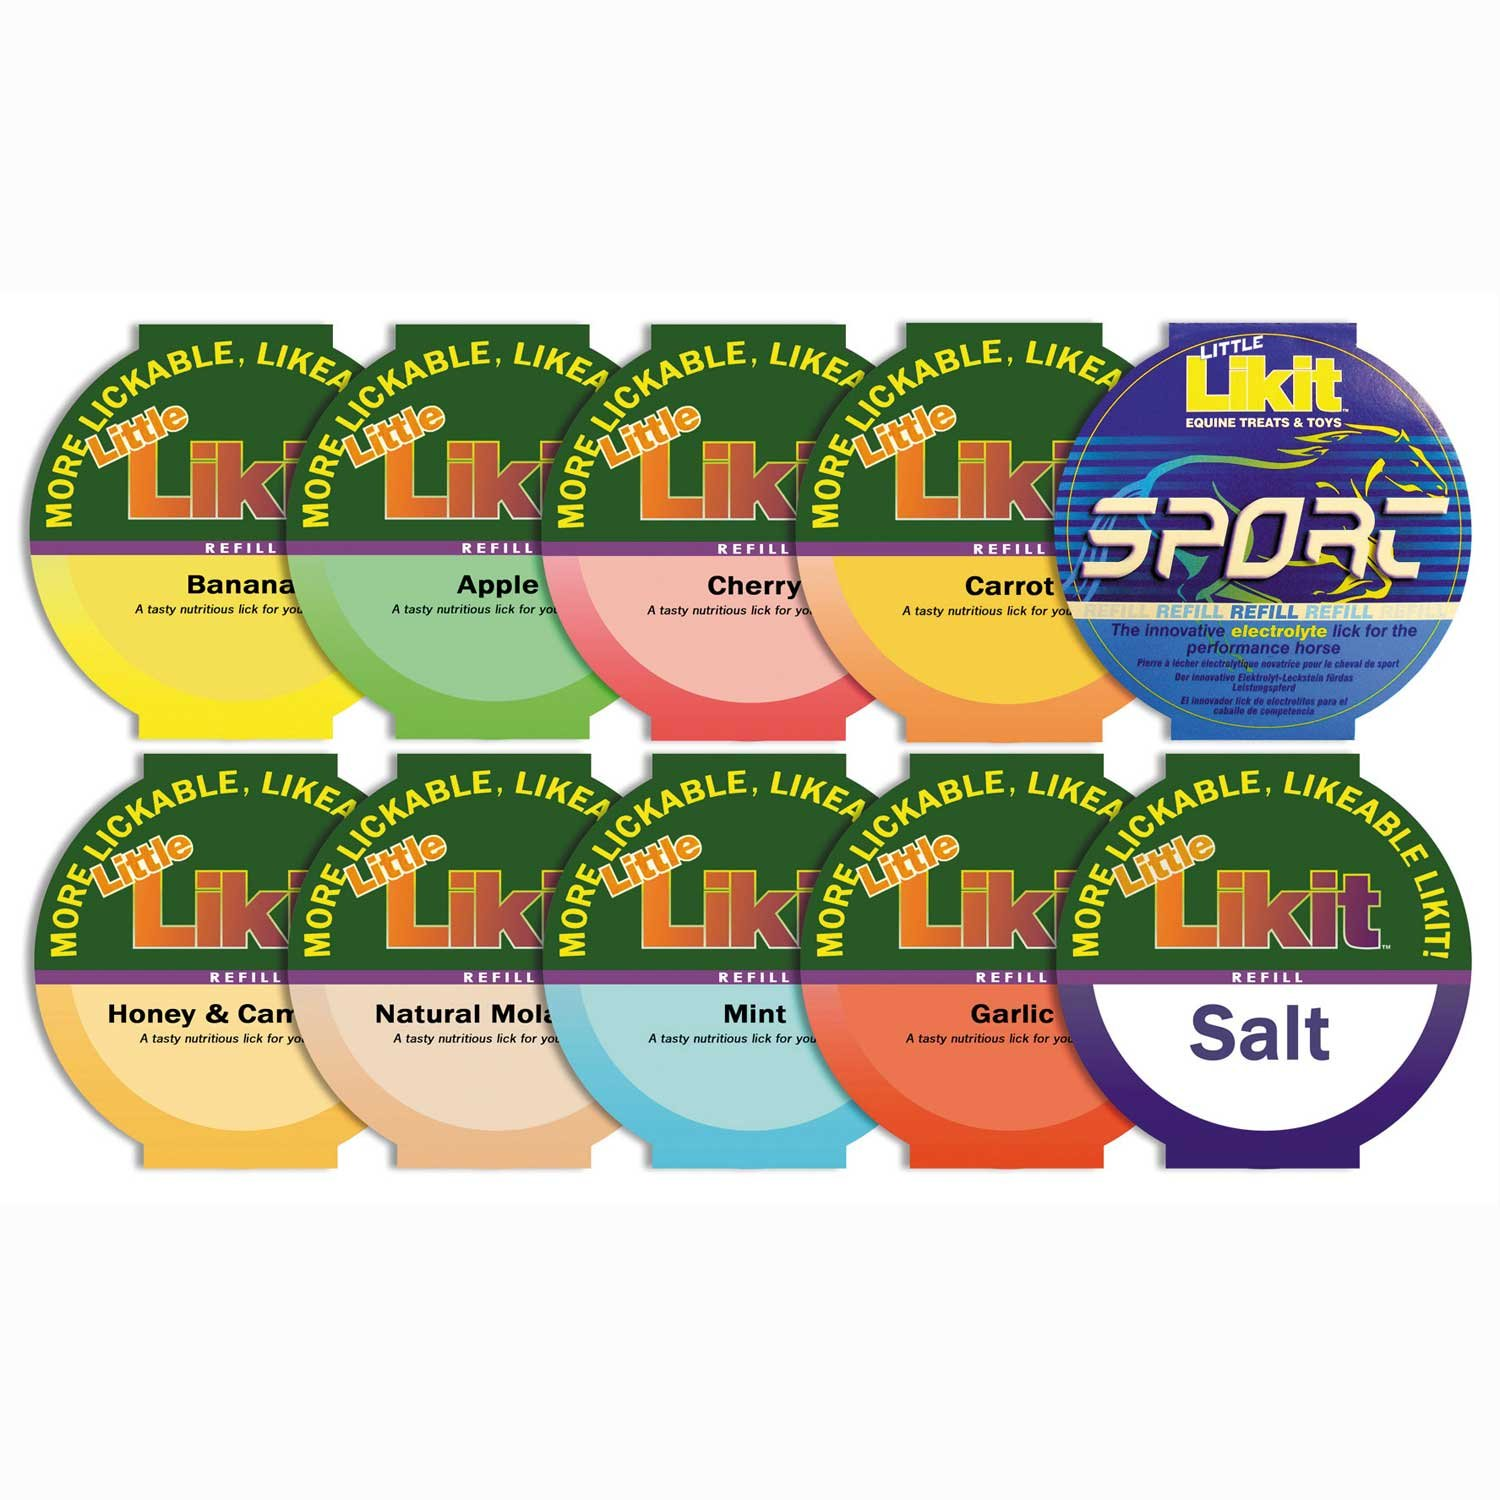 560-0208 Little Likits (Mint)